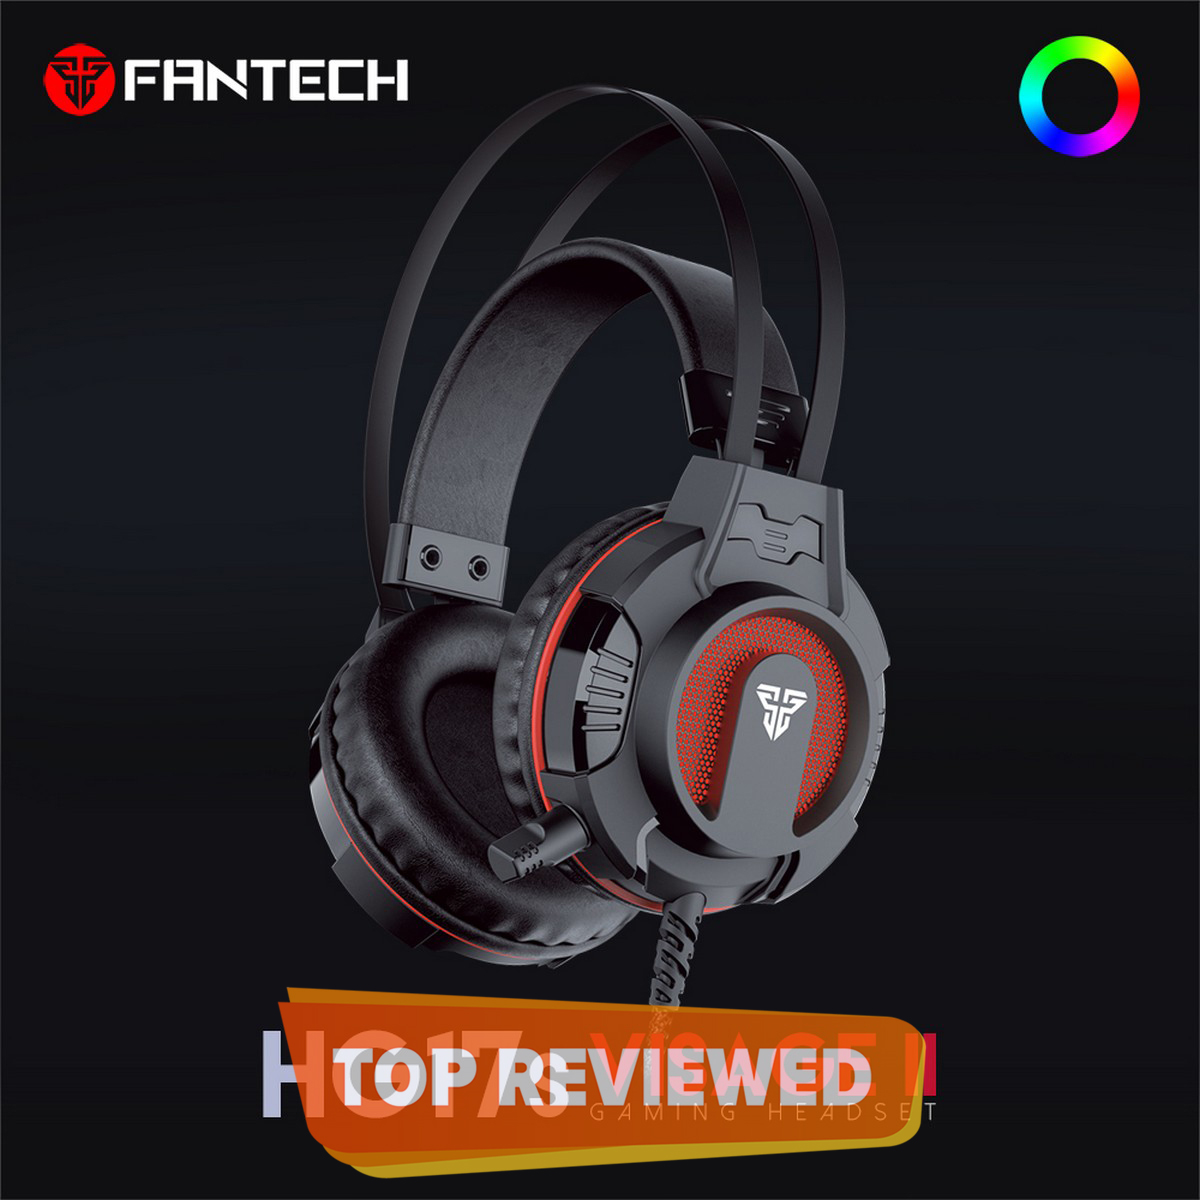 FANTECH HG17 Visage II Surround Sound RGB Gaming Headphone With Noise Cancelling Microphone